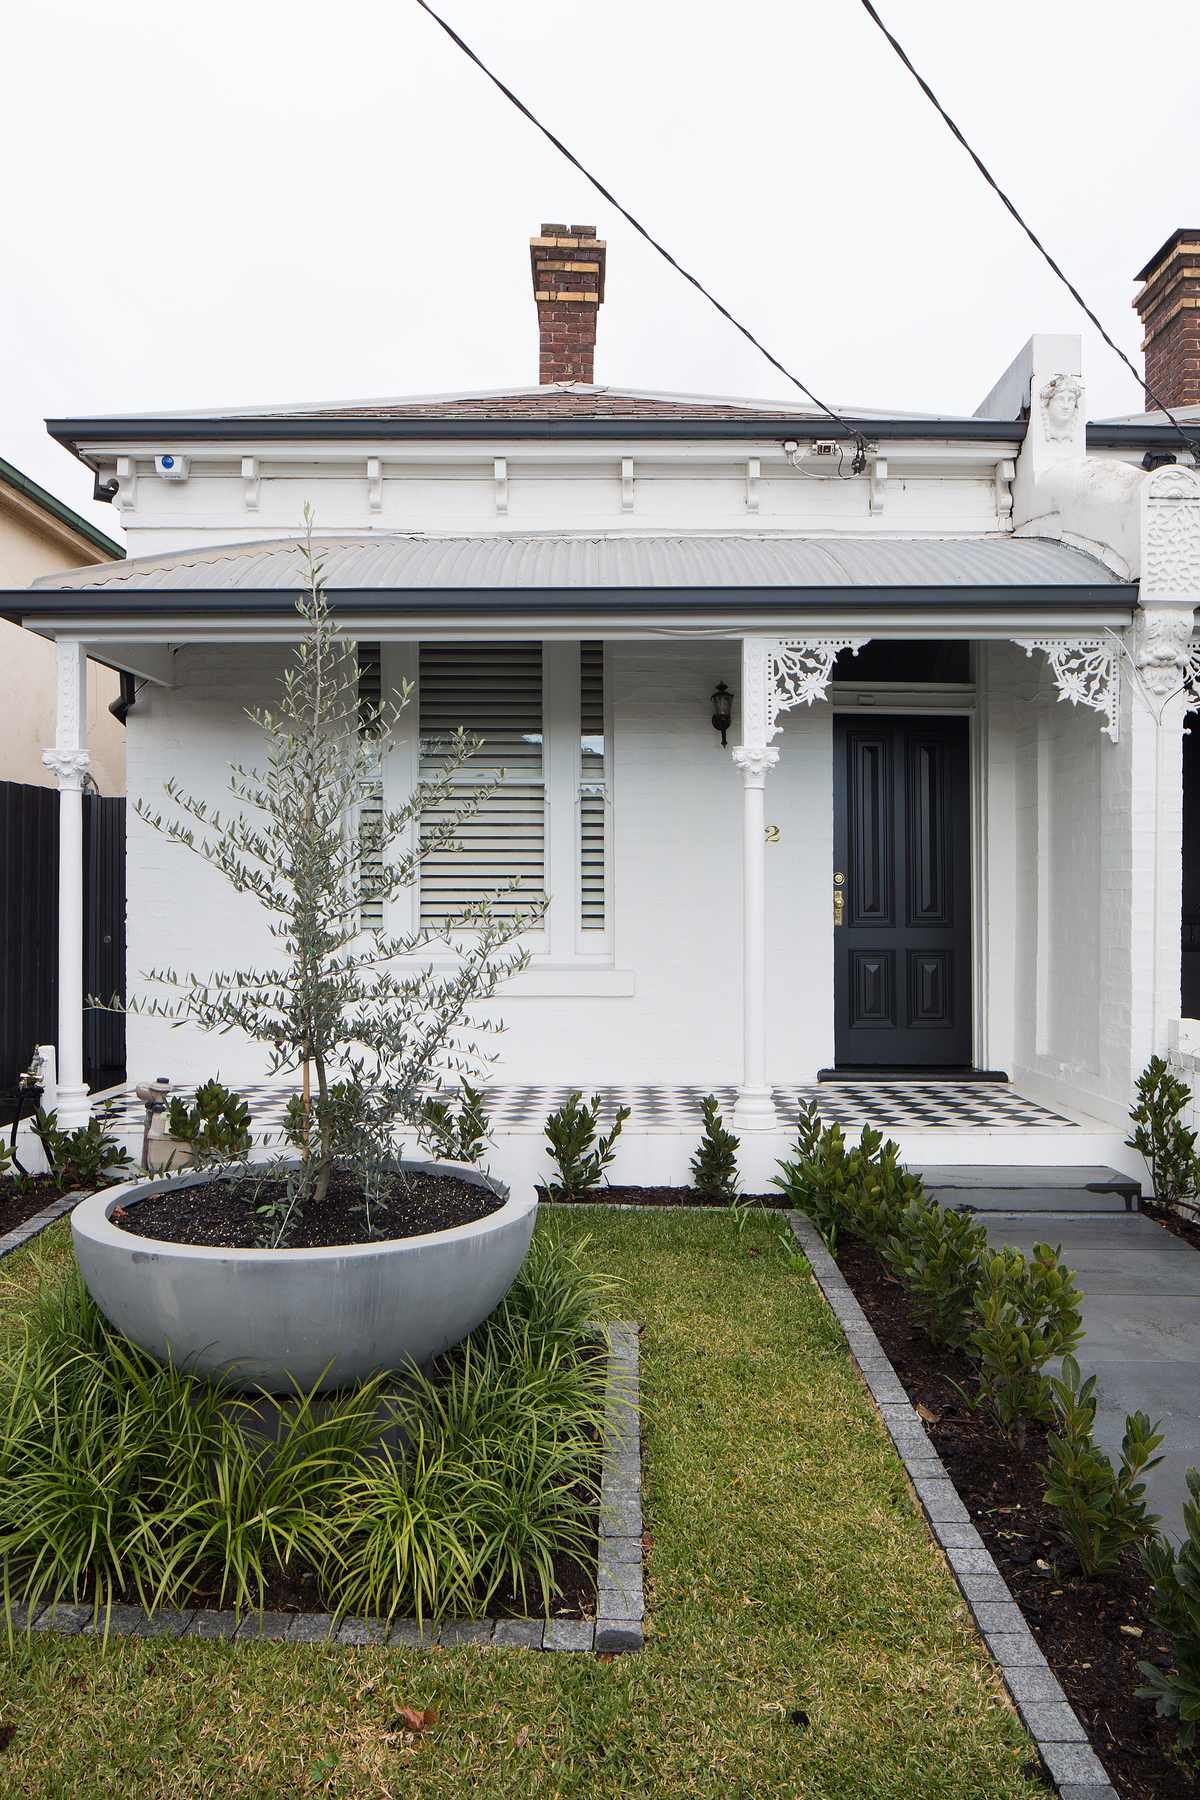 Australian Design, Hawthorn Terrace by Dan Webster, Melbourne, VIC, Australia (7)